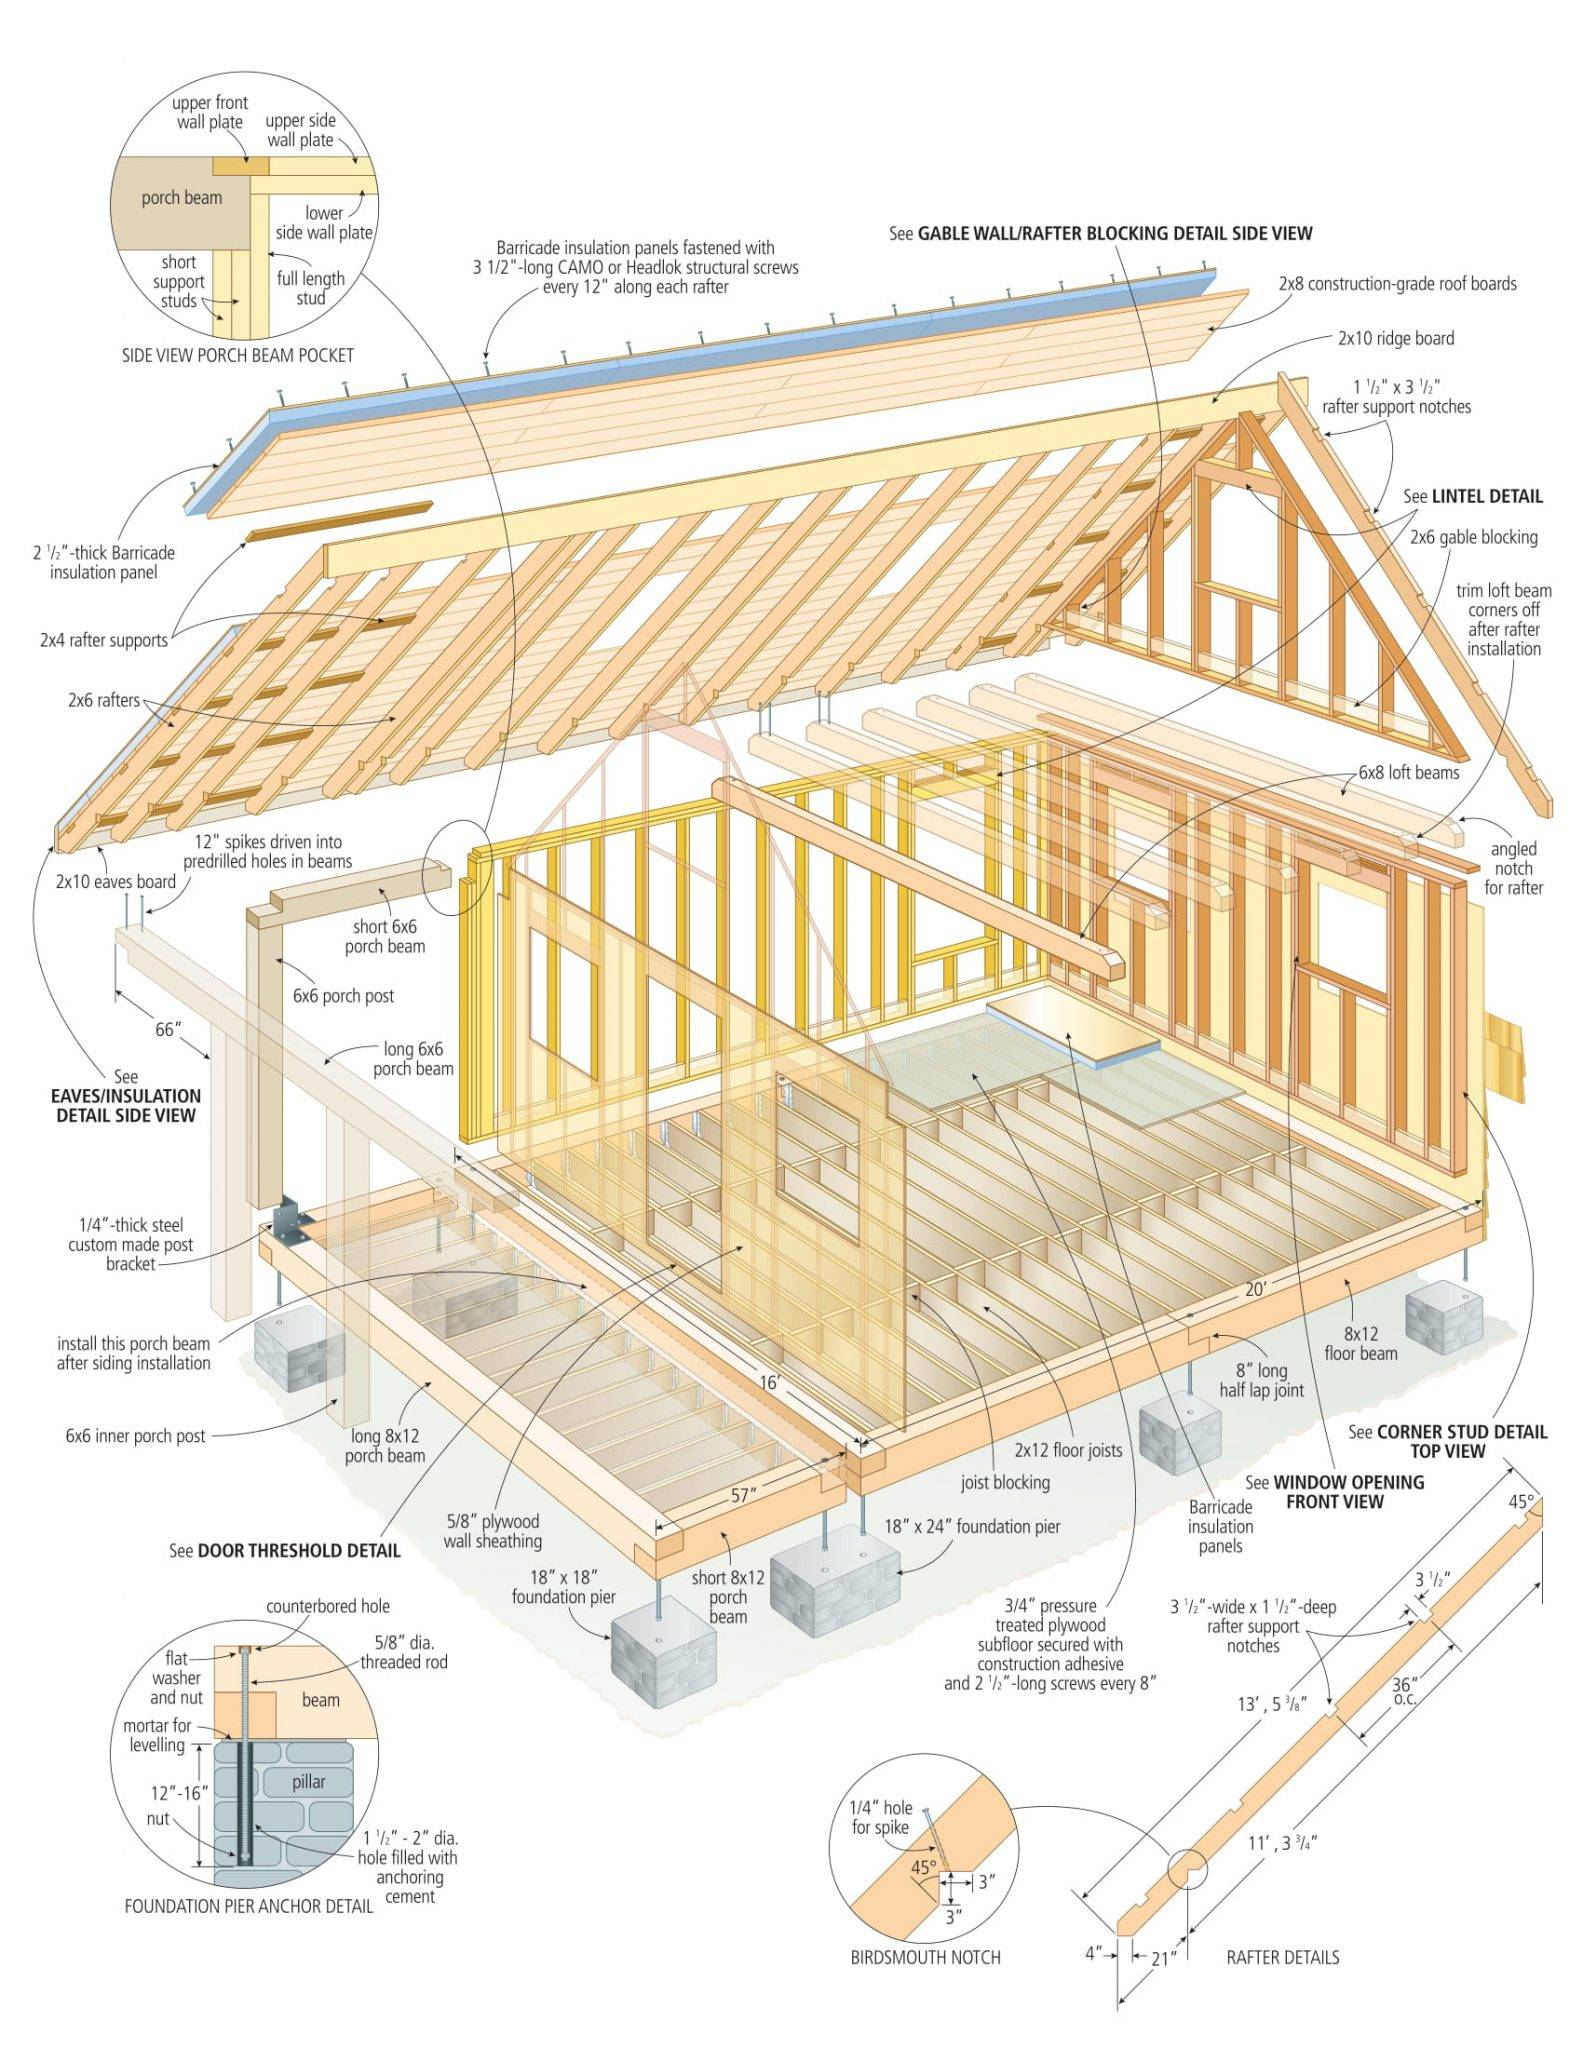 Thereu0027s No End Of Building Plans Online, But Surprisingly Few Cabin Plans  Deliver An Authentic Cabin Experience. So What Makes For A Good Cabin Design ?